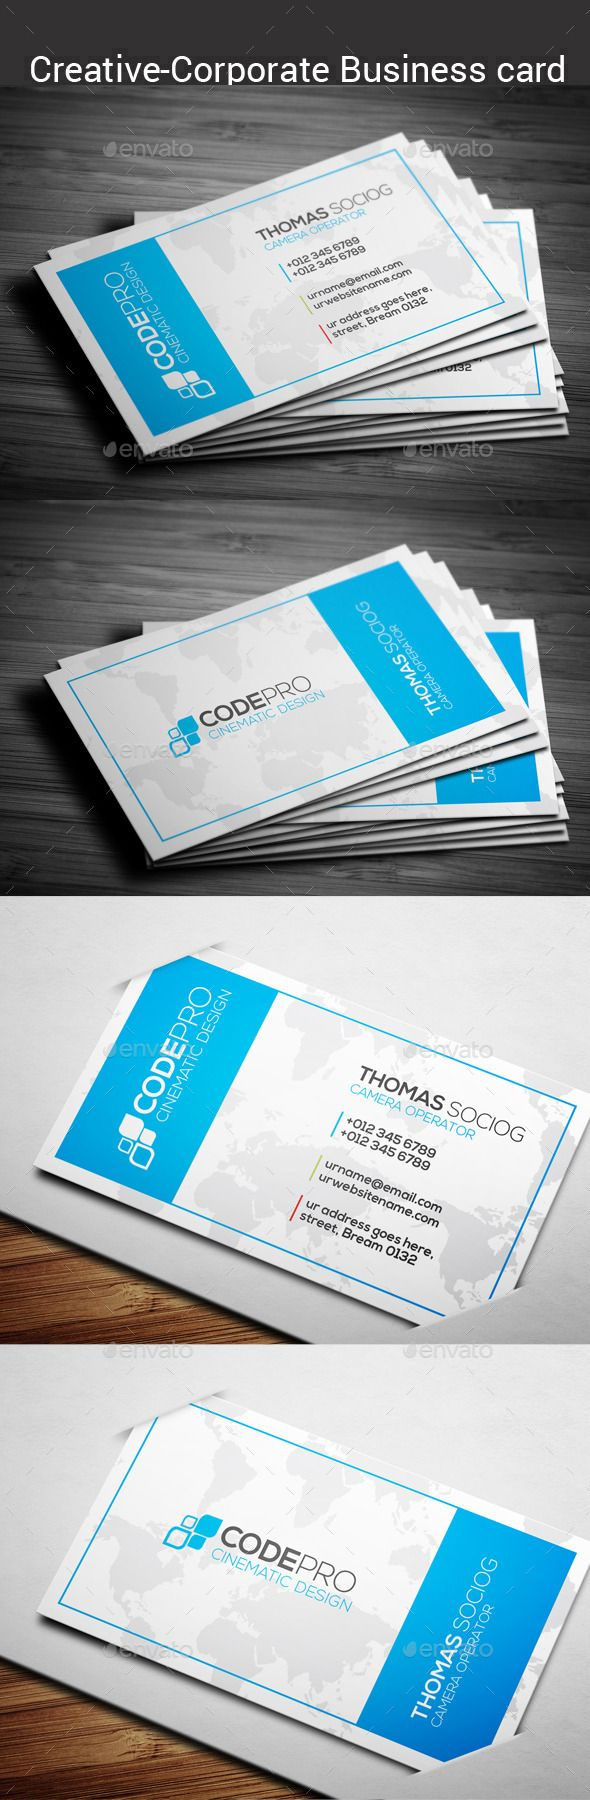 Corporate business card corporate business card template psd corporate business card corporate business card template psd download here http reheart Image collections